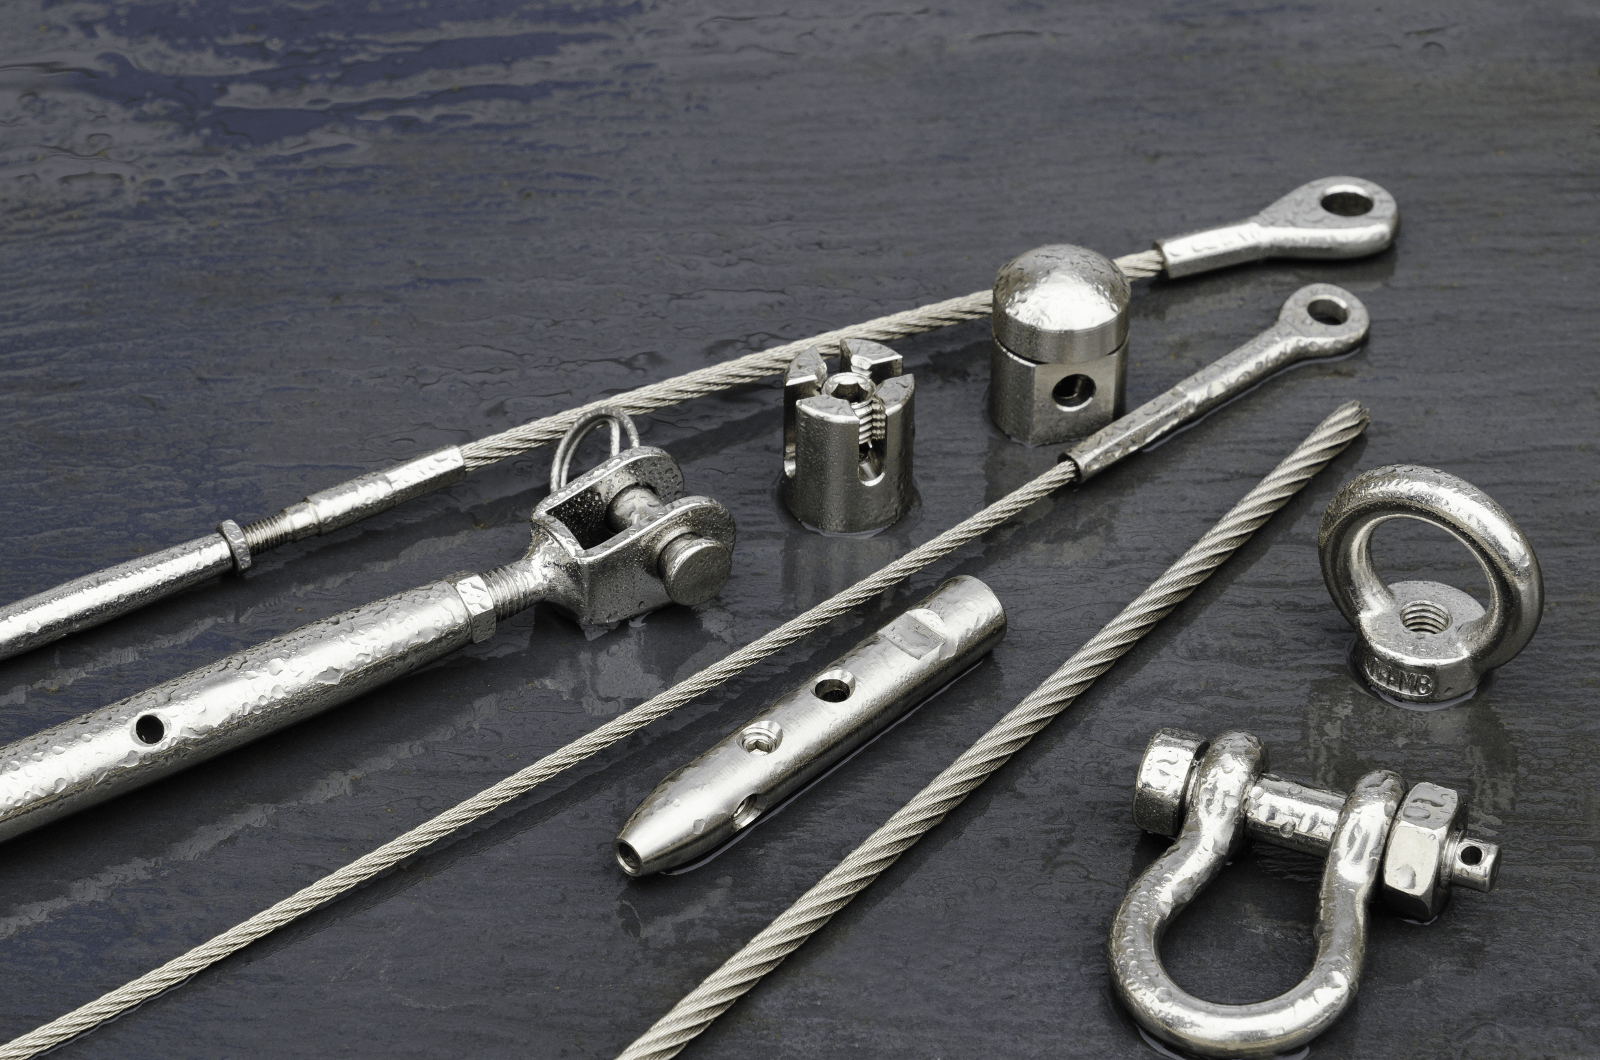 Stainless steel wire rope end fittings and components